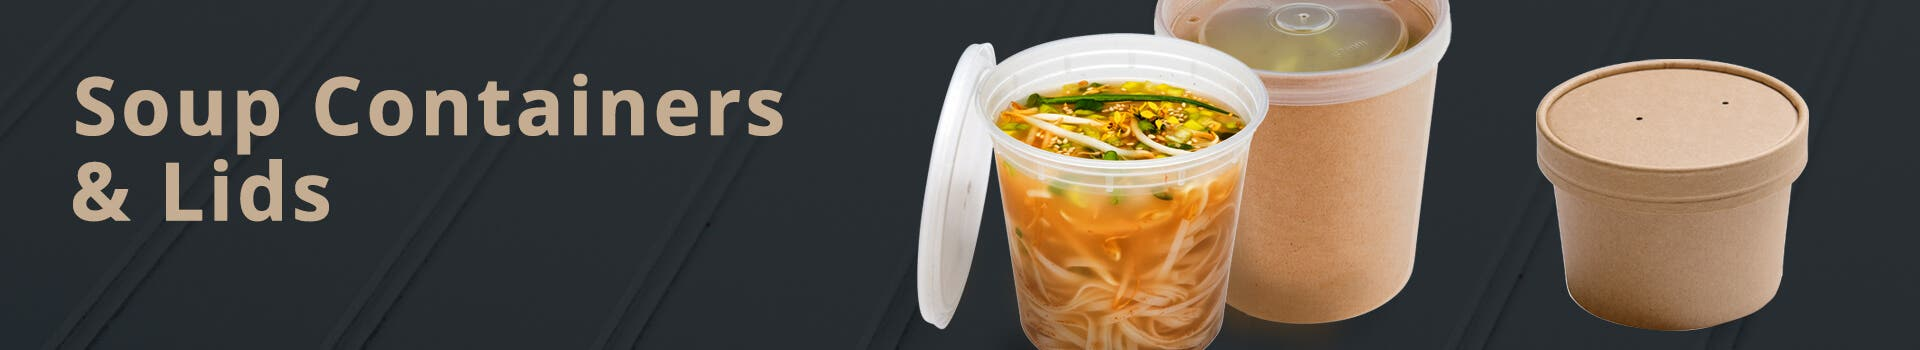 Small/Medium Soup Containers & Lids